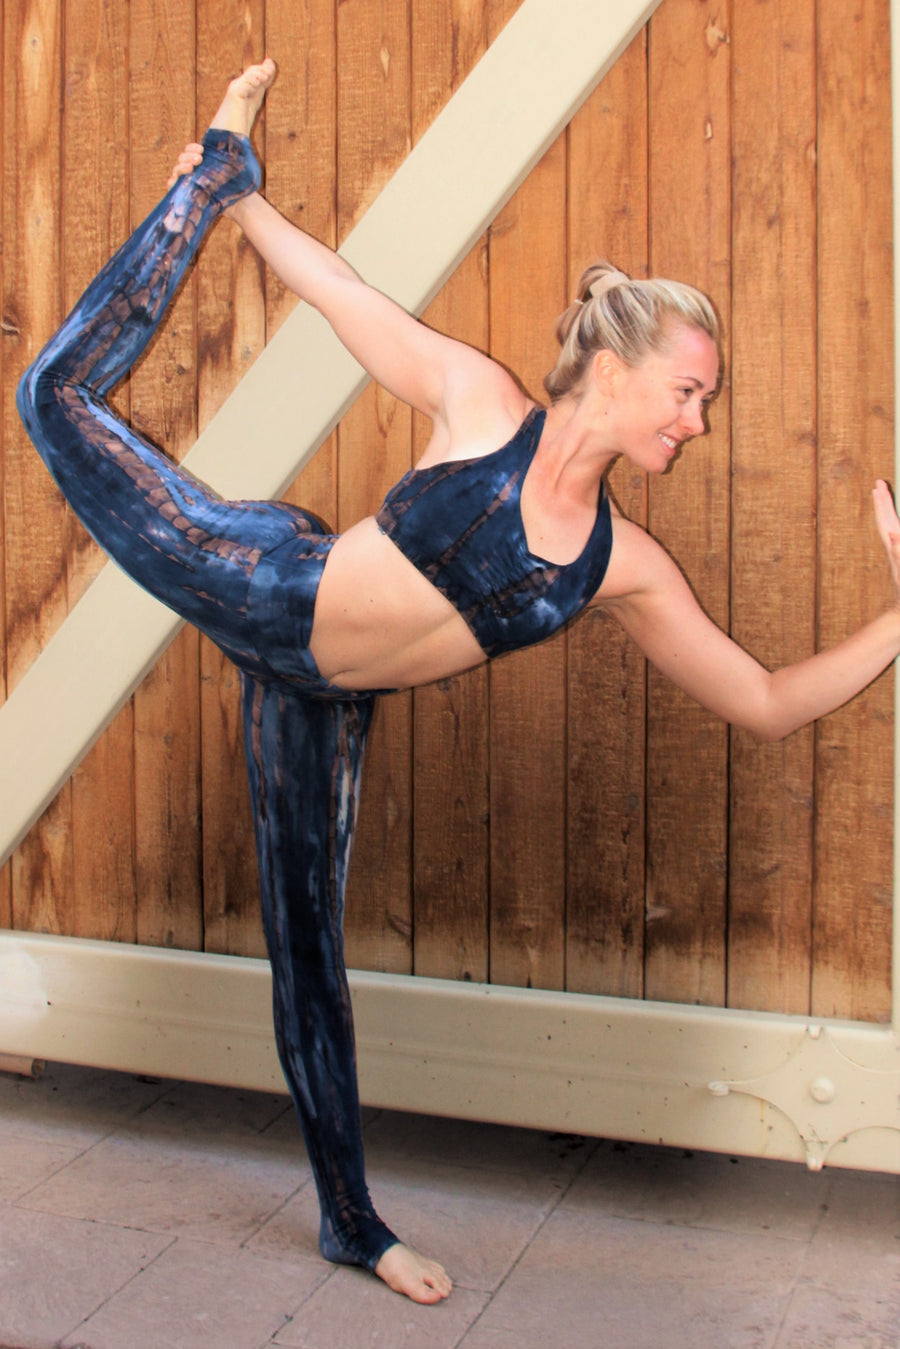 Indigo Earth tie dye outfit, one yoga pants and one Shakti Sports Bra in deep dark blue tie dyed with brown streaks and white highlights.